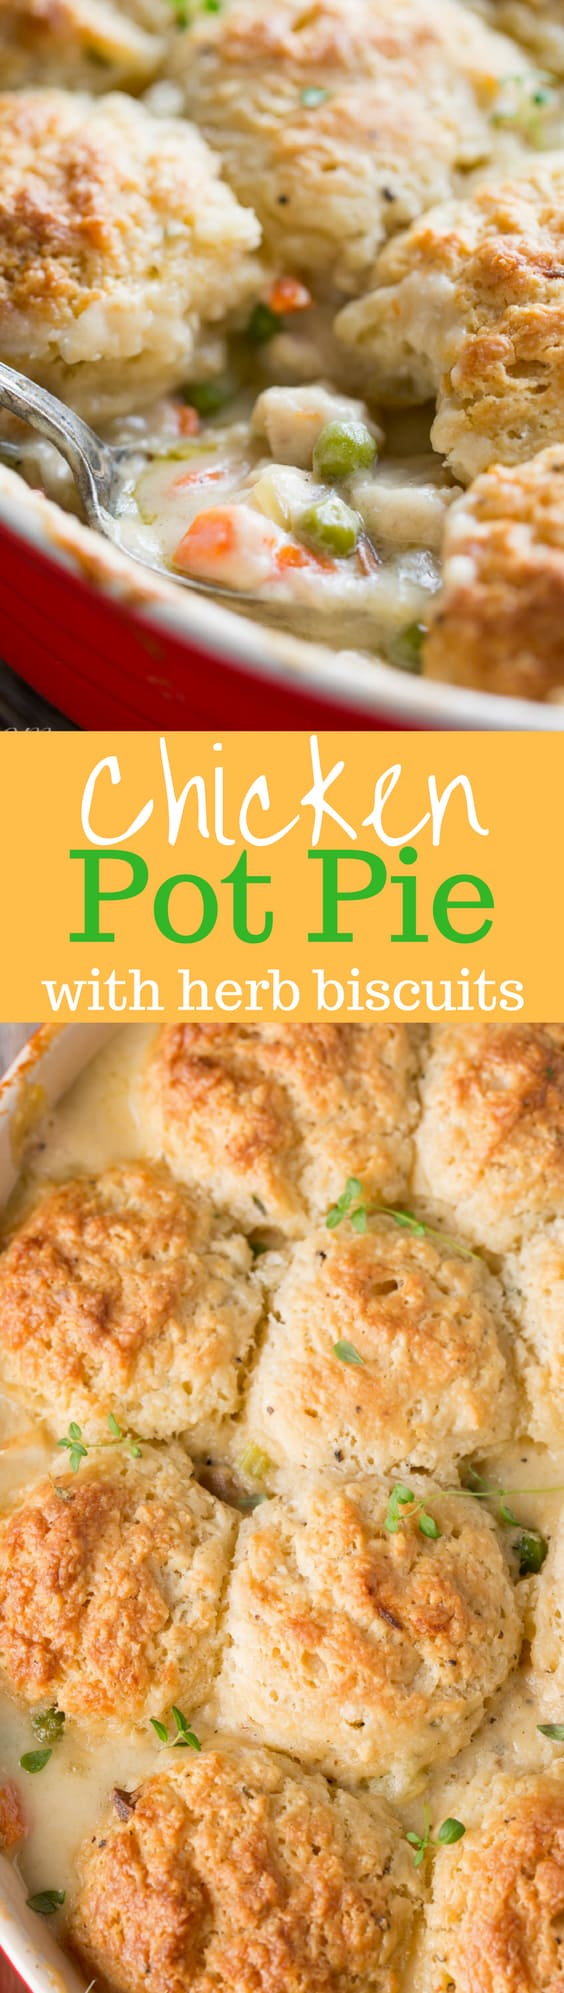 Chicken Pot Pie with Herb Biscuits - Tender chicken combined with carrots, peas, mushrooms and celery in a rich white sauce then topped with herb biscuits | www.savingdessert.com